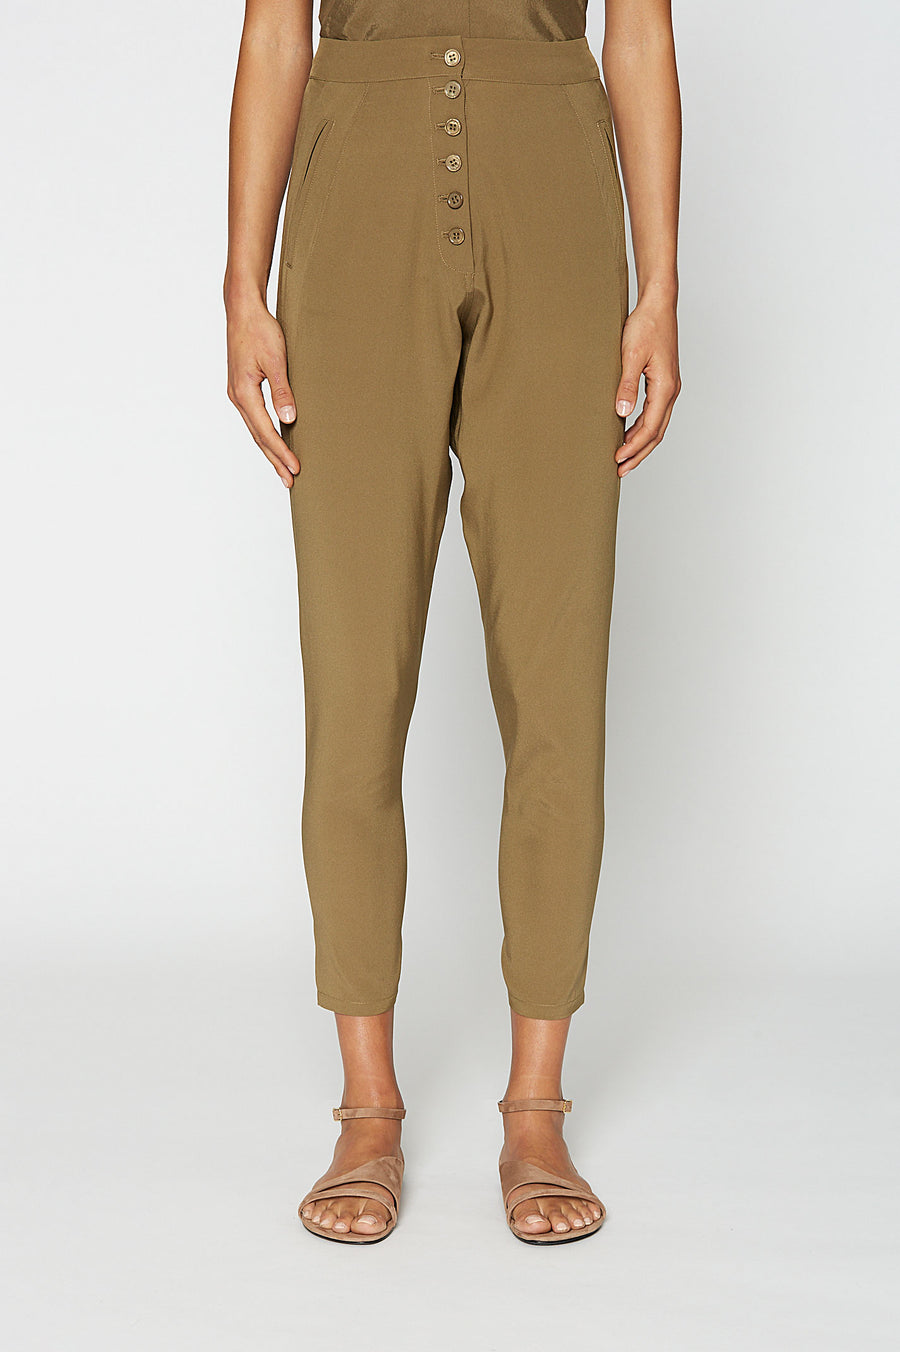 SILK LOW RISE BUTTON PANT